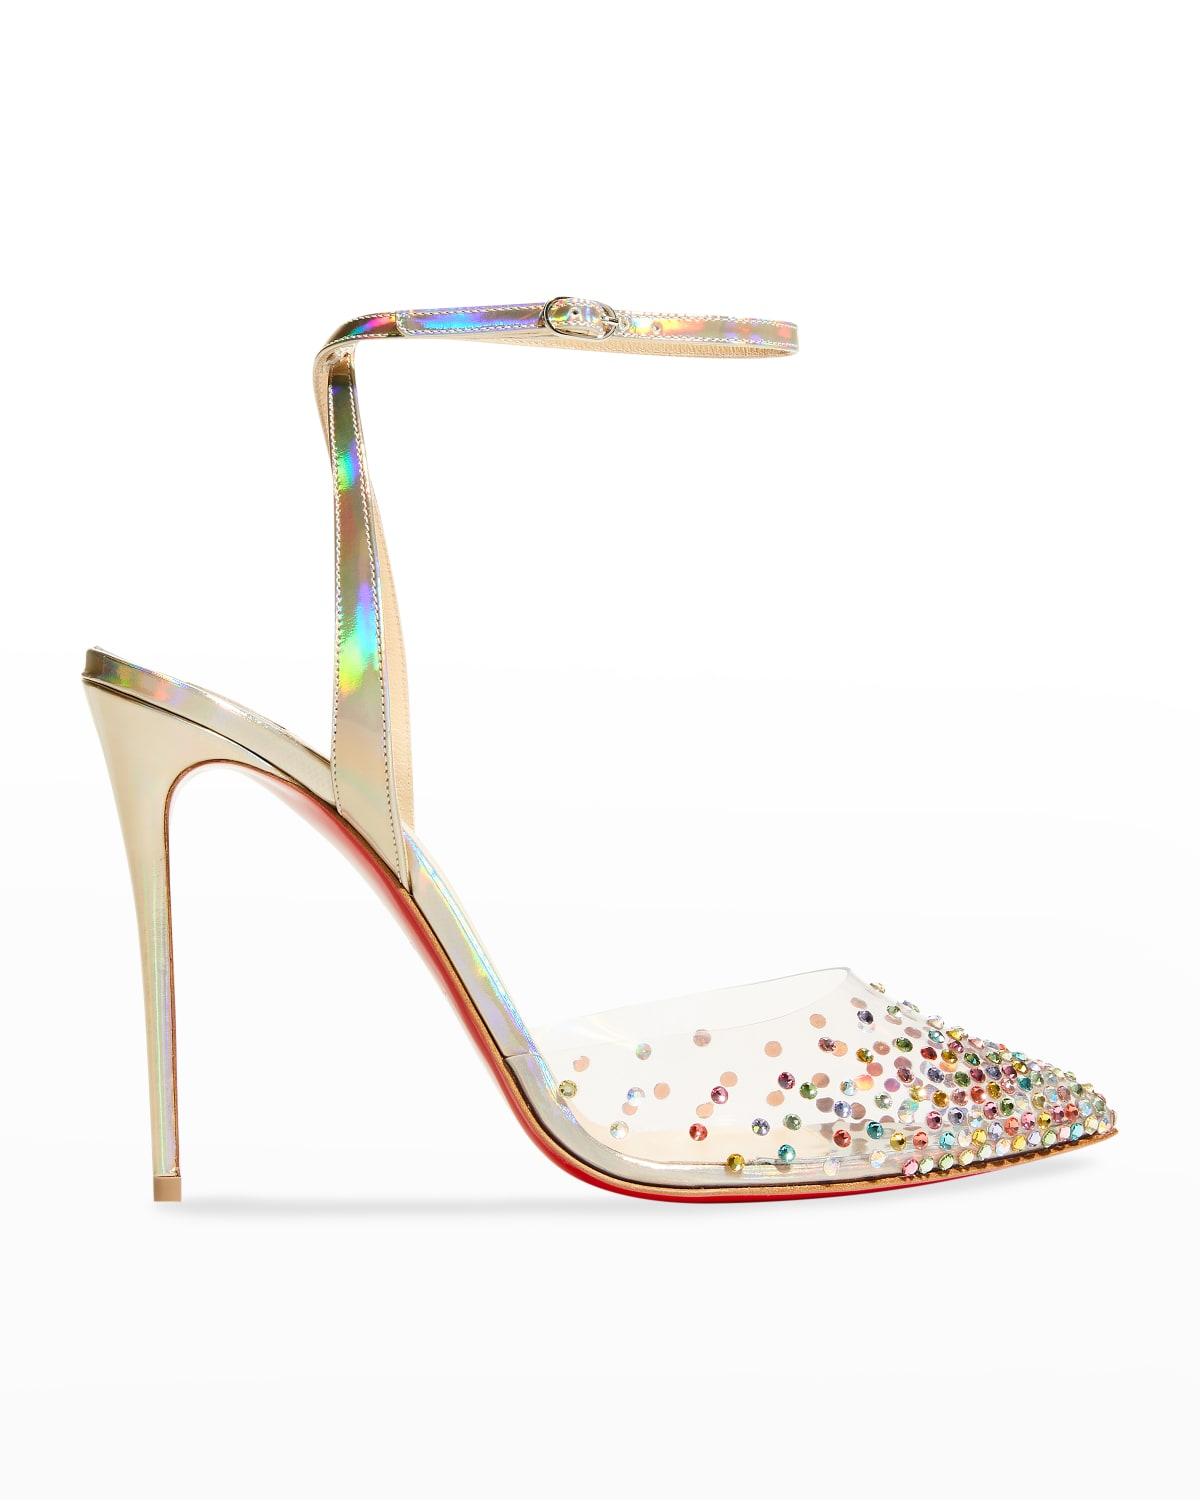 Spikaqueen Crystal Transparent Ankle-Strap Red Sole High-Heel Pumps